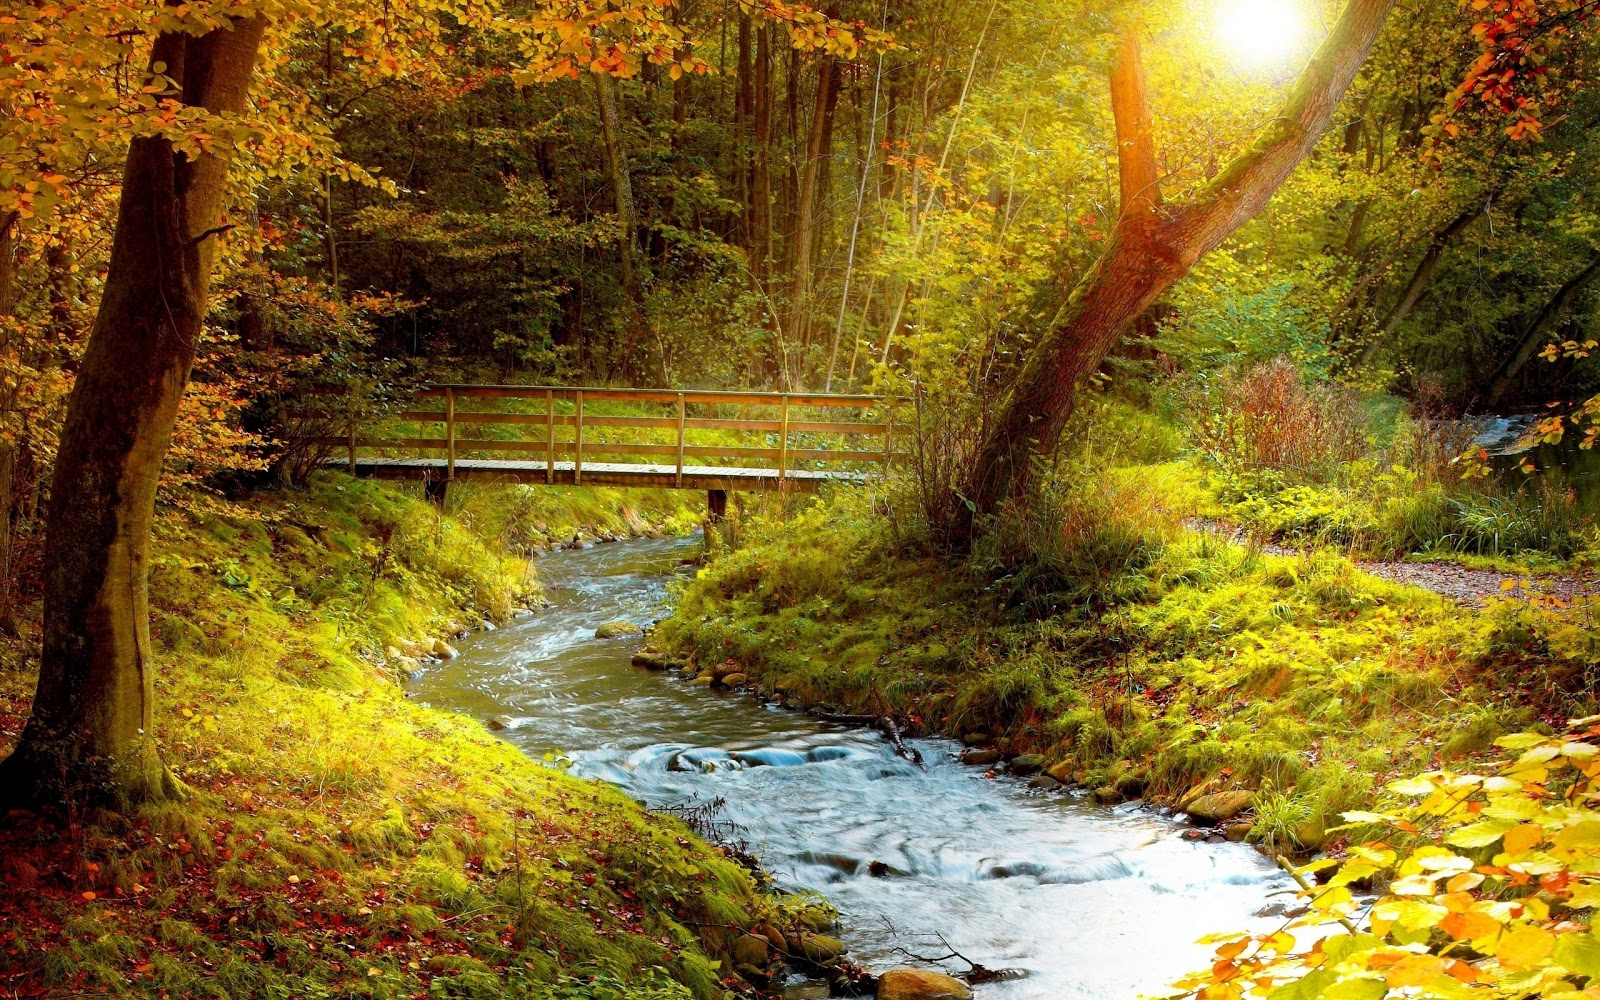 Windows 8 HD Desktop Wallpapers Forests and Woodlands Wallpapers 2 1600x1000